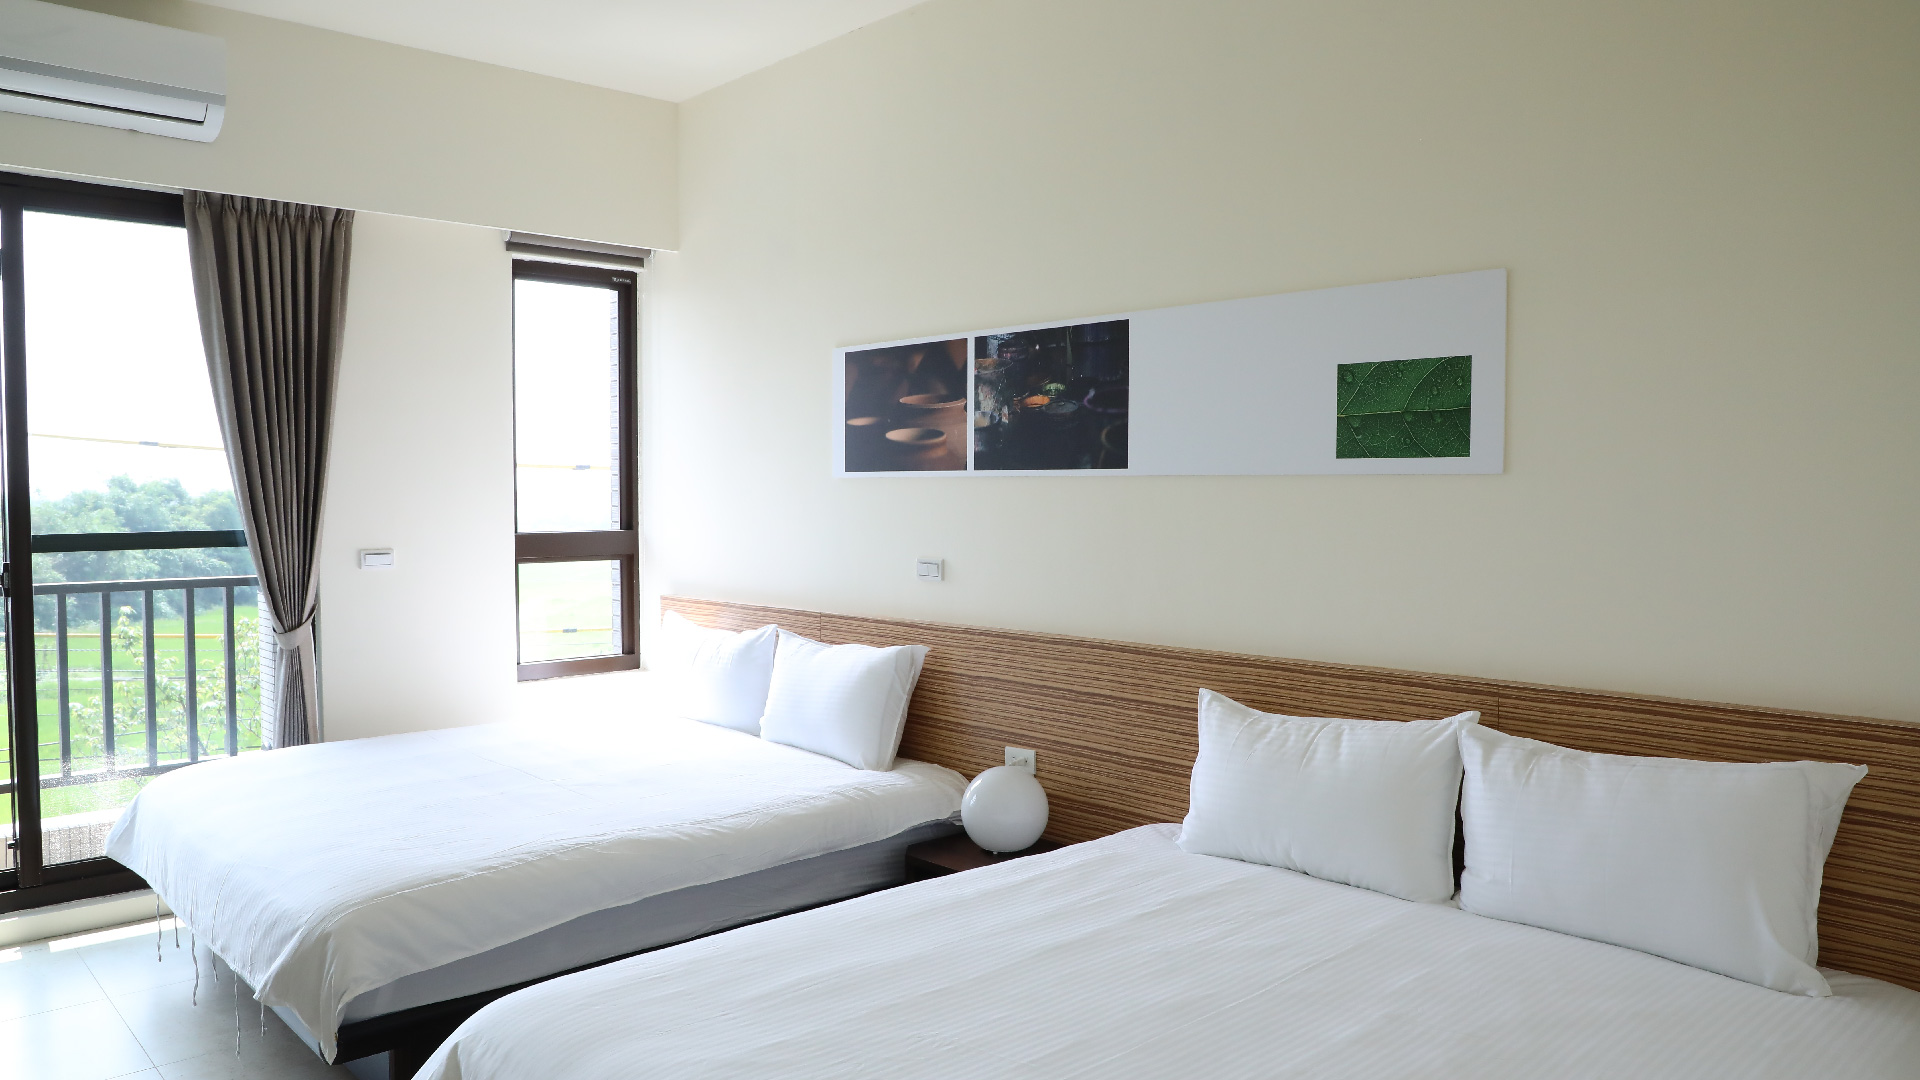 Rooms-66_202-1